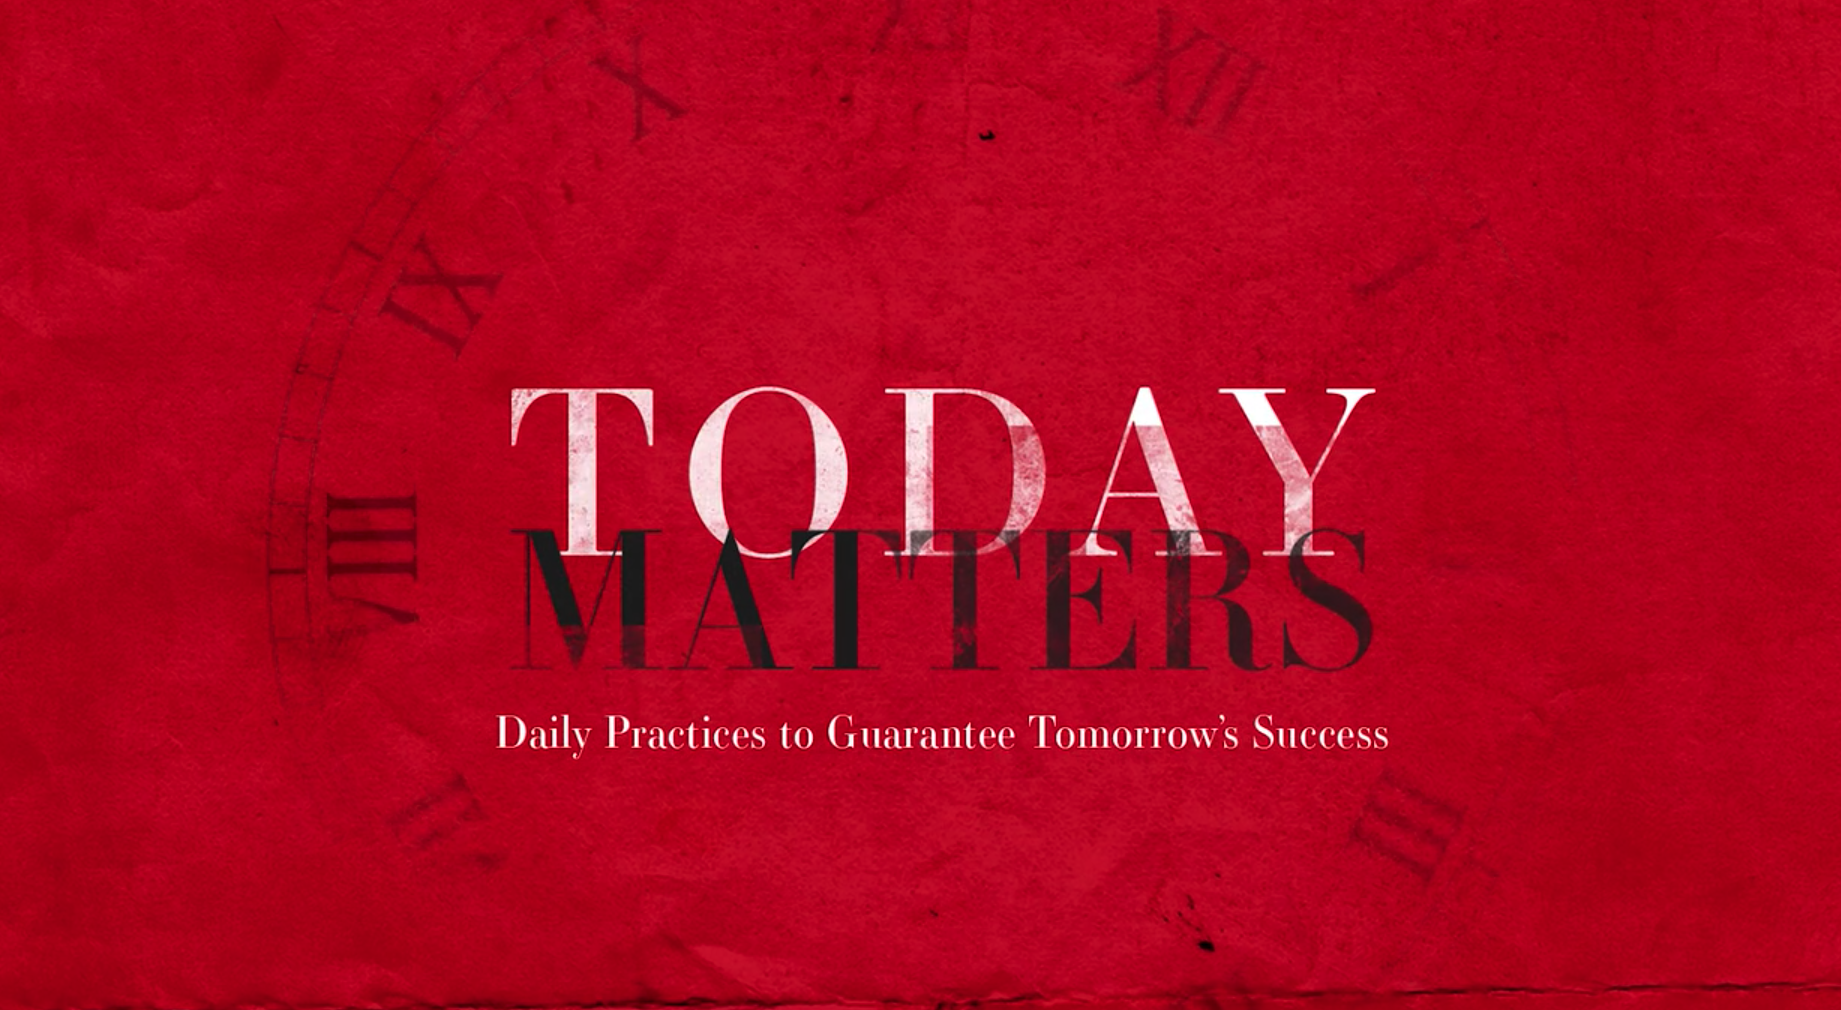 Today Matters | John Maxwell